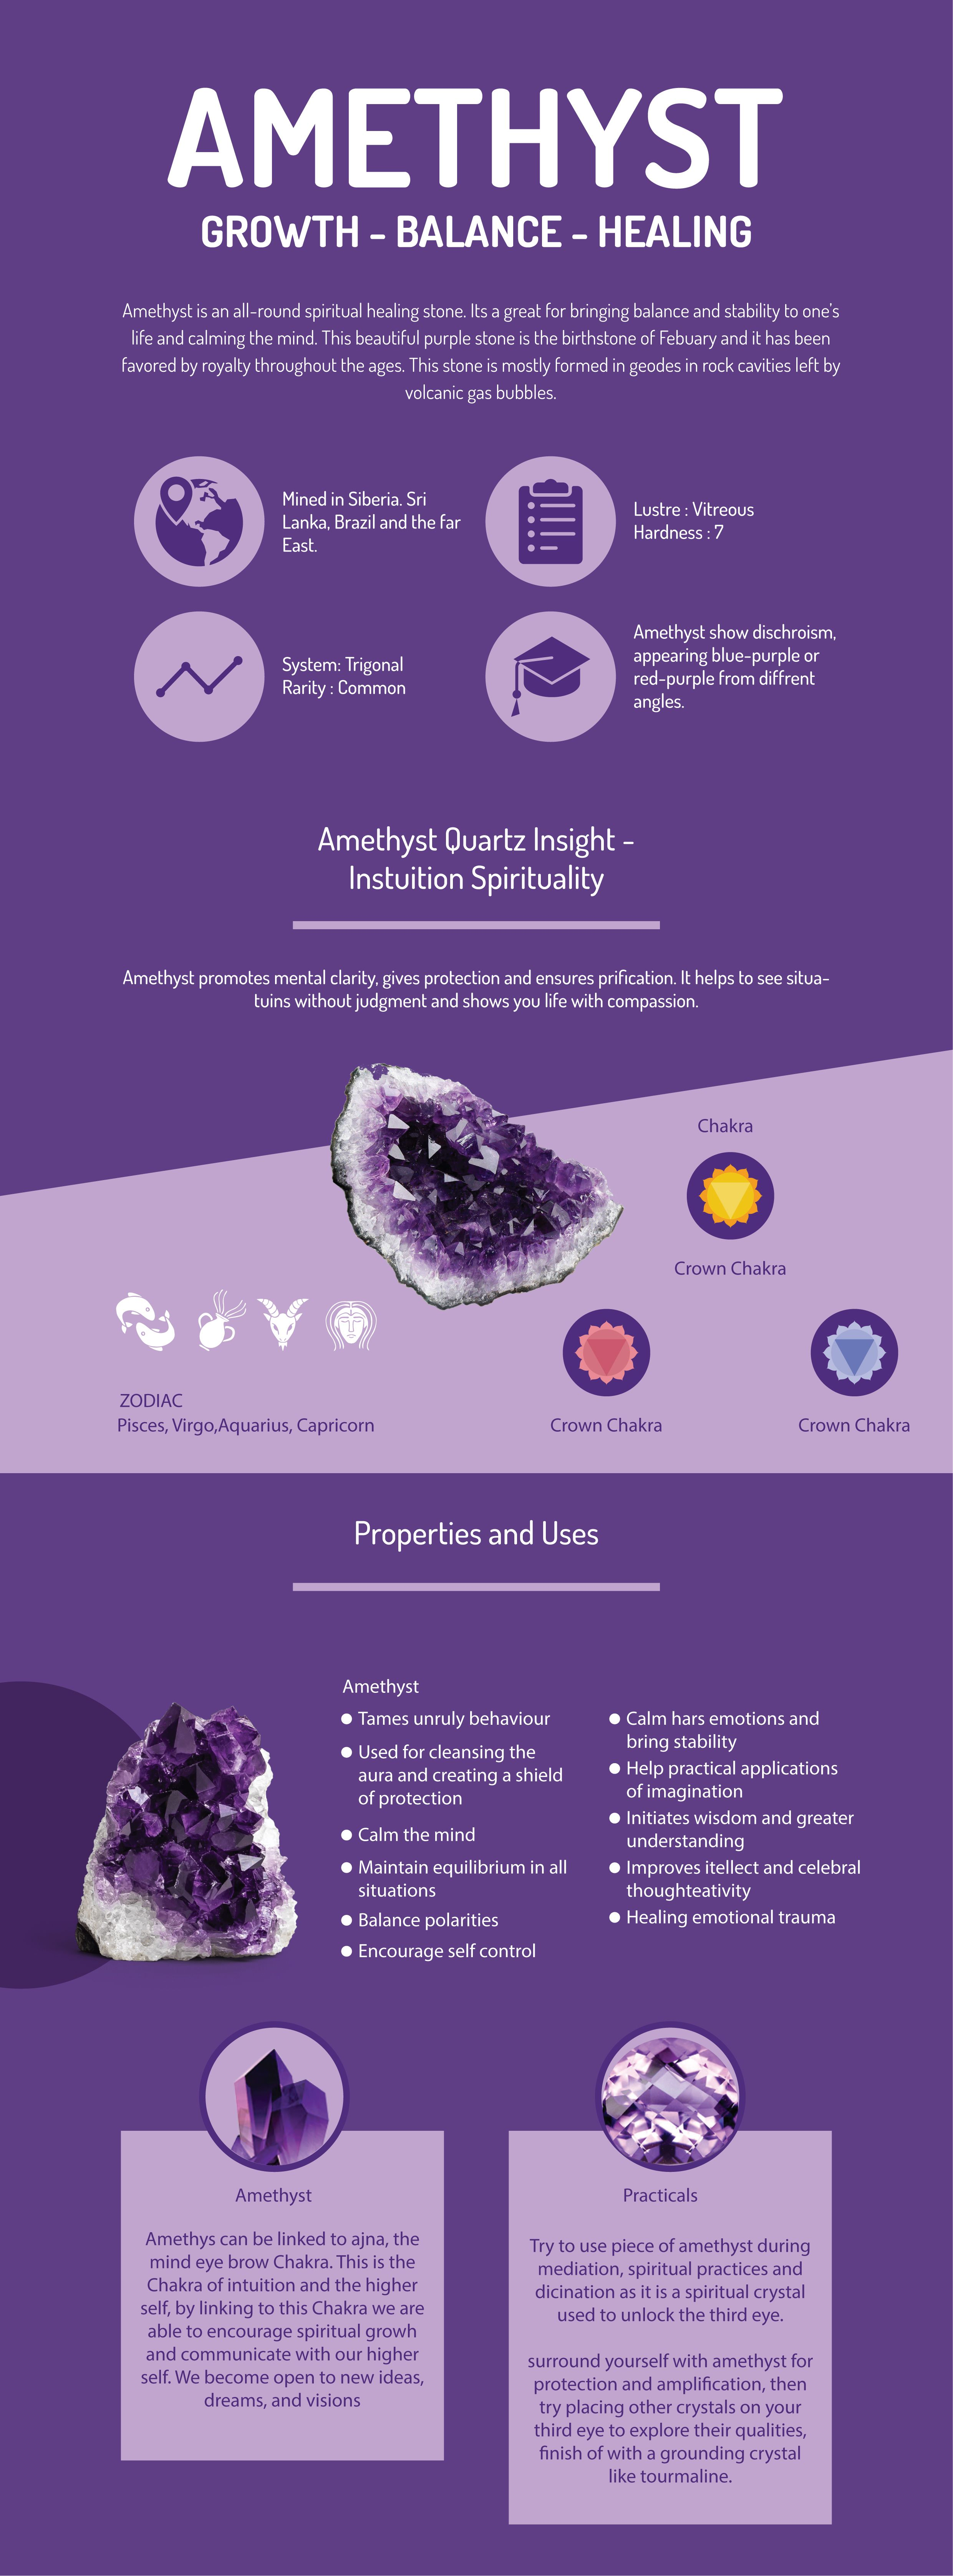 37++ How to use amethyst for meditation ideas